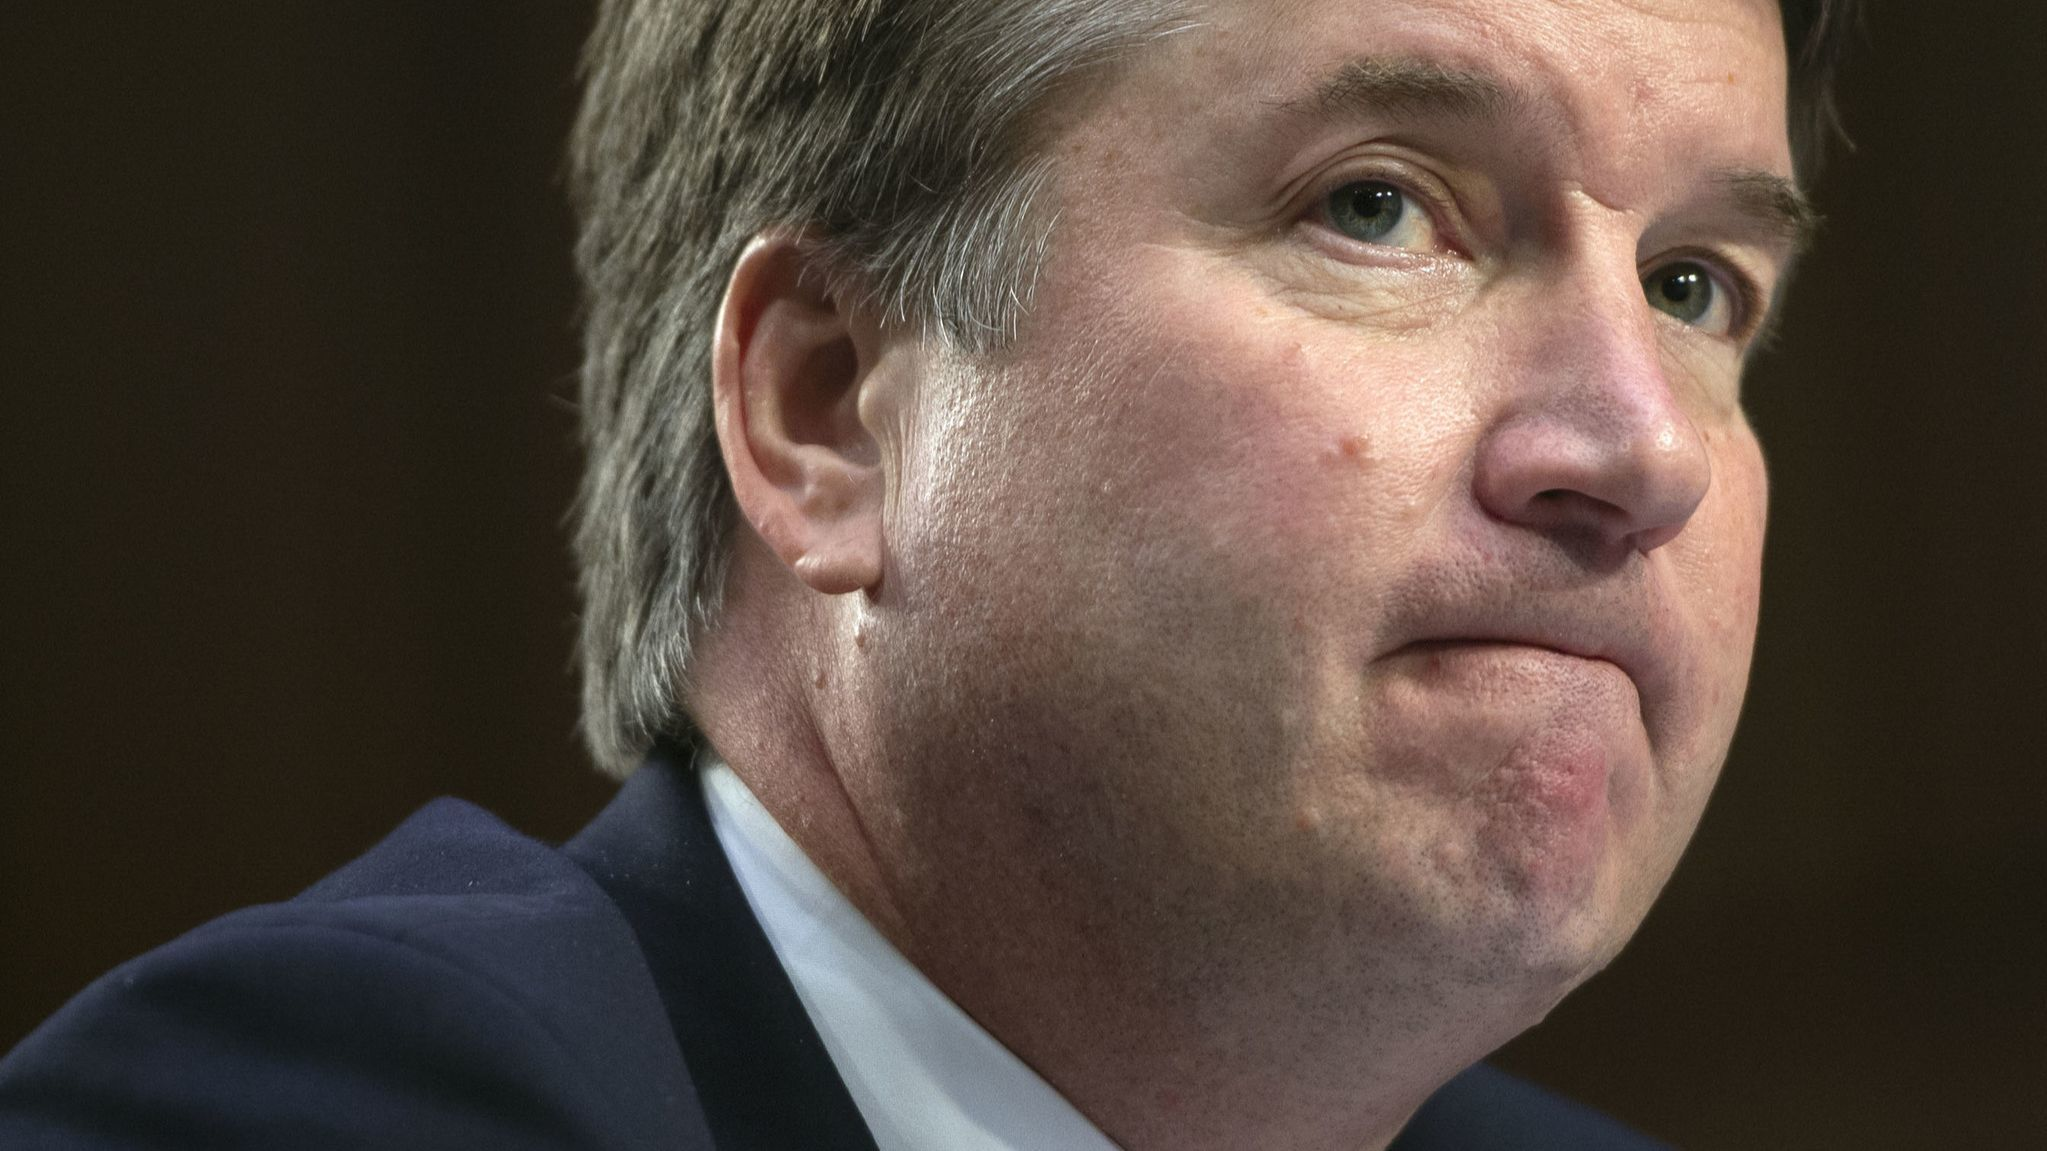 GOP rejects calls to delay hearing until FBI reviews sexual assault allegation against Kavanaugh